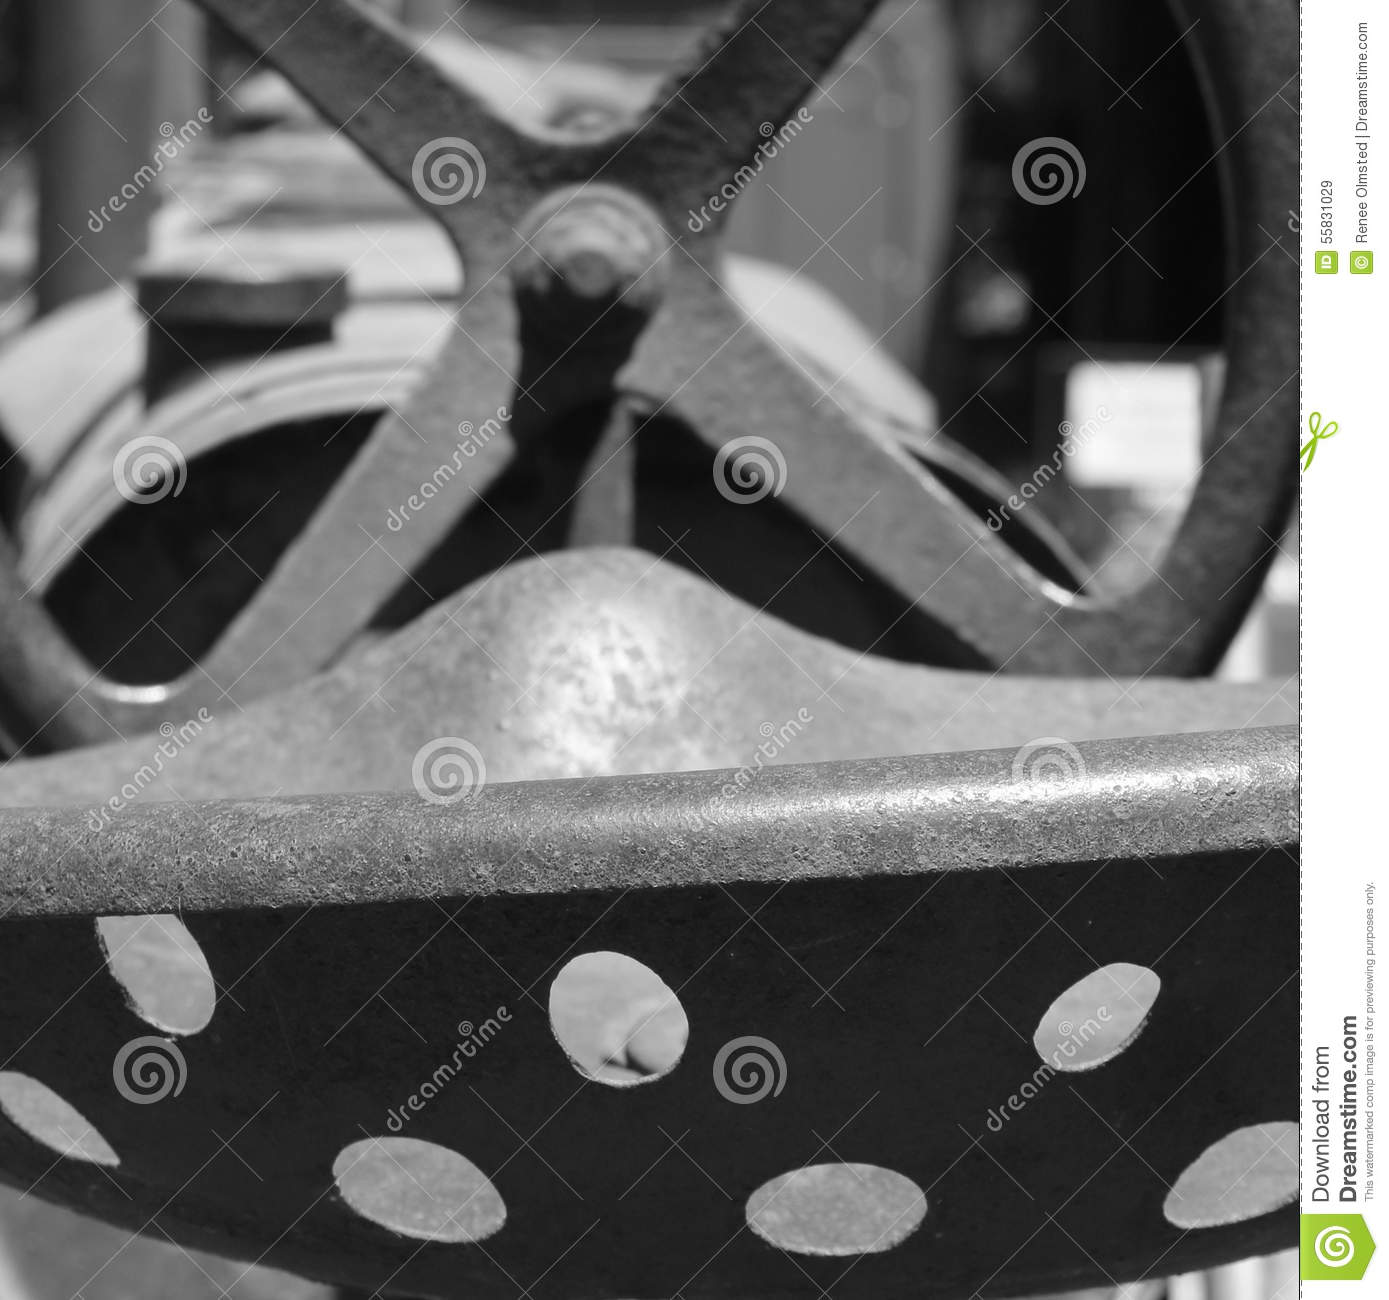 Metal Tractor Seat With Wheels : Vintage metal tractor seat and steering wheel stock image